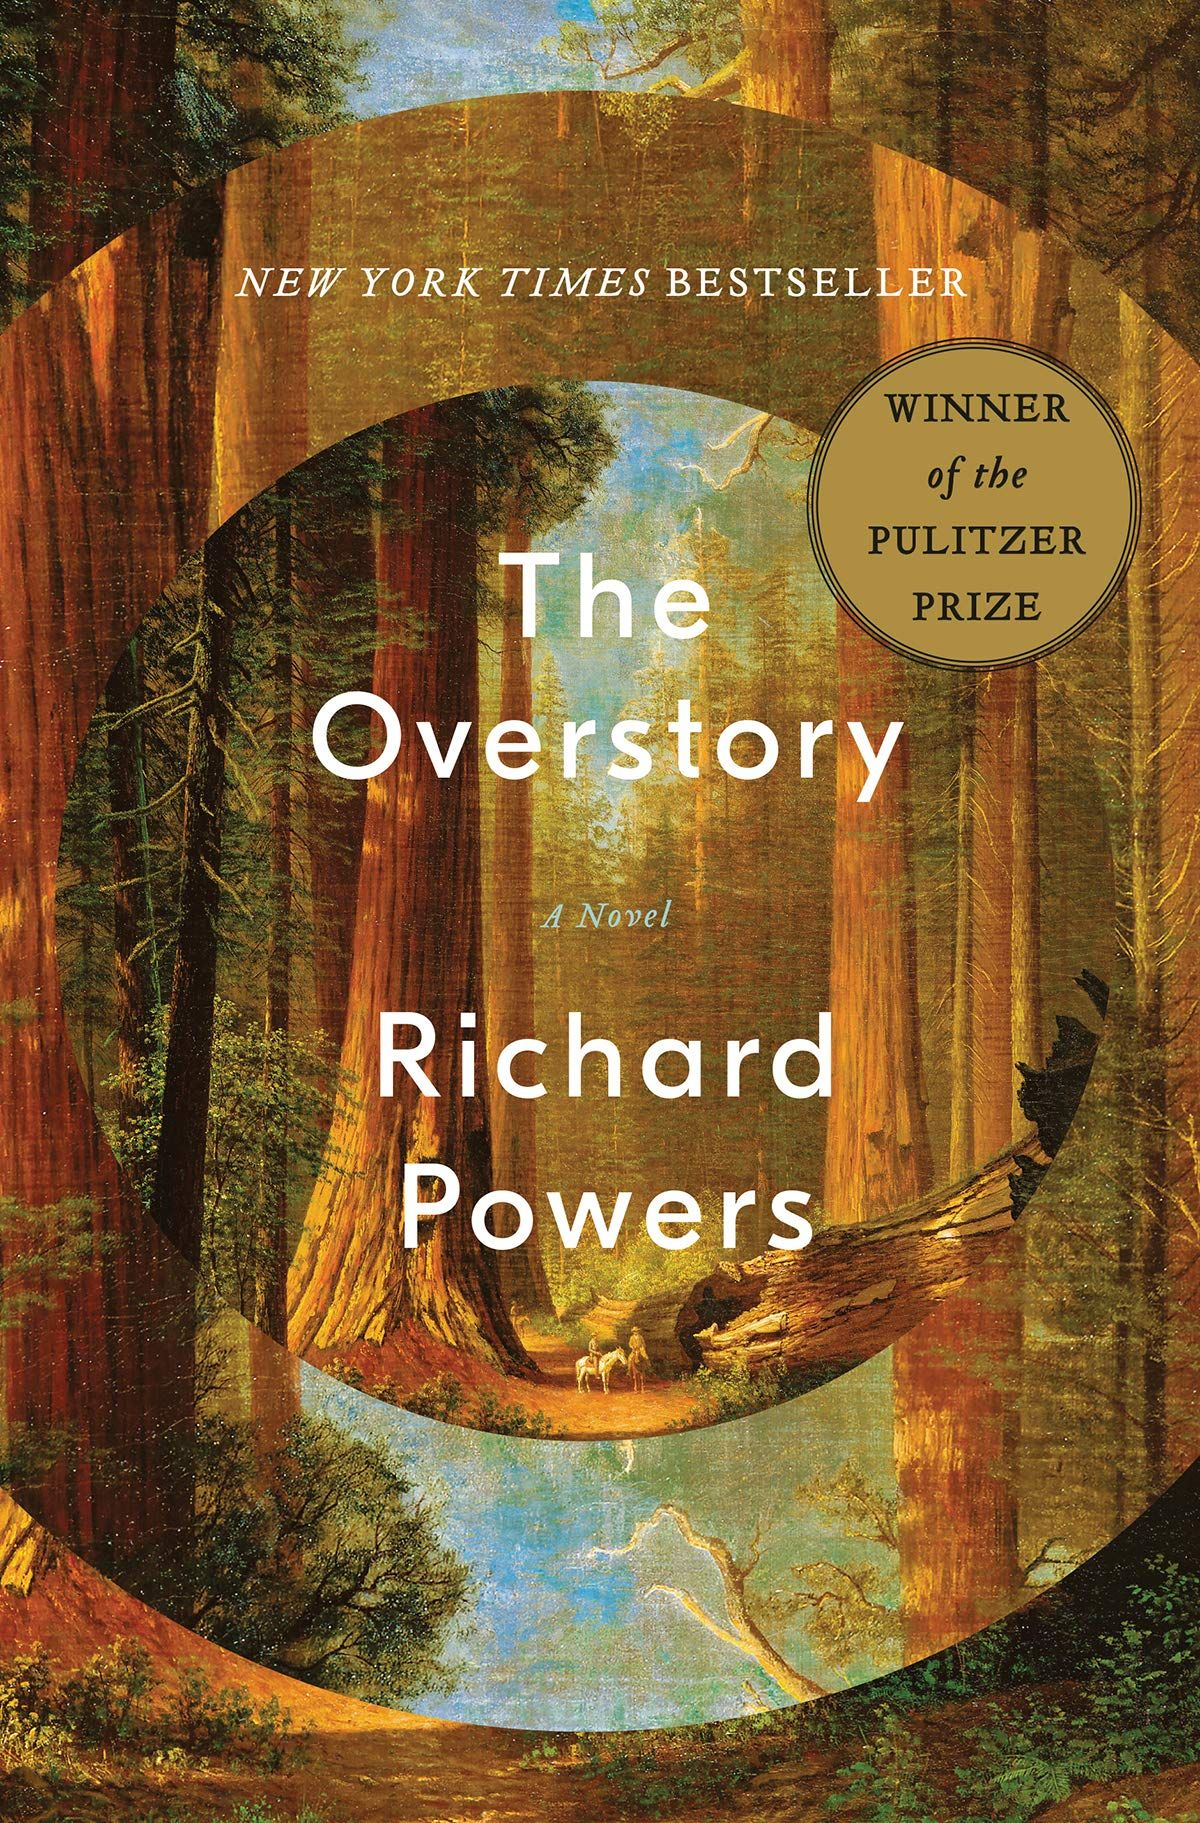 PDF] Ebook Download The Overstory by Richard Powers | Audiobooks